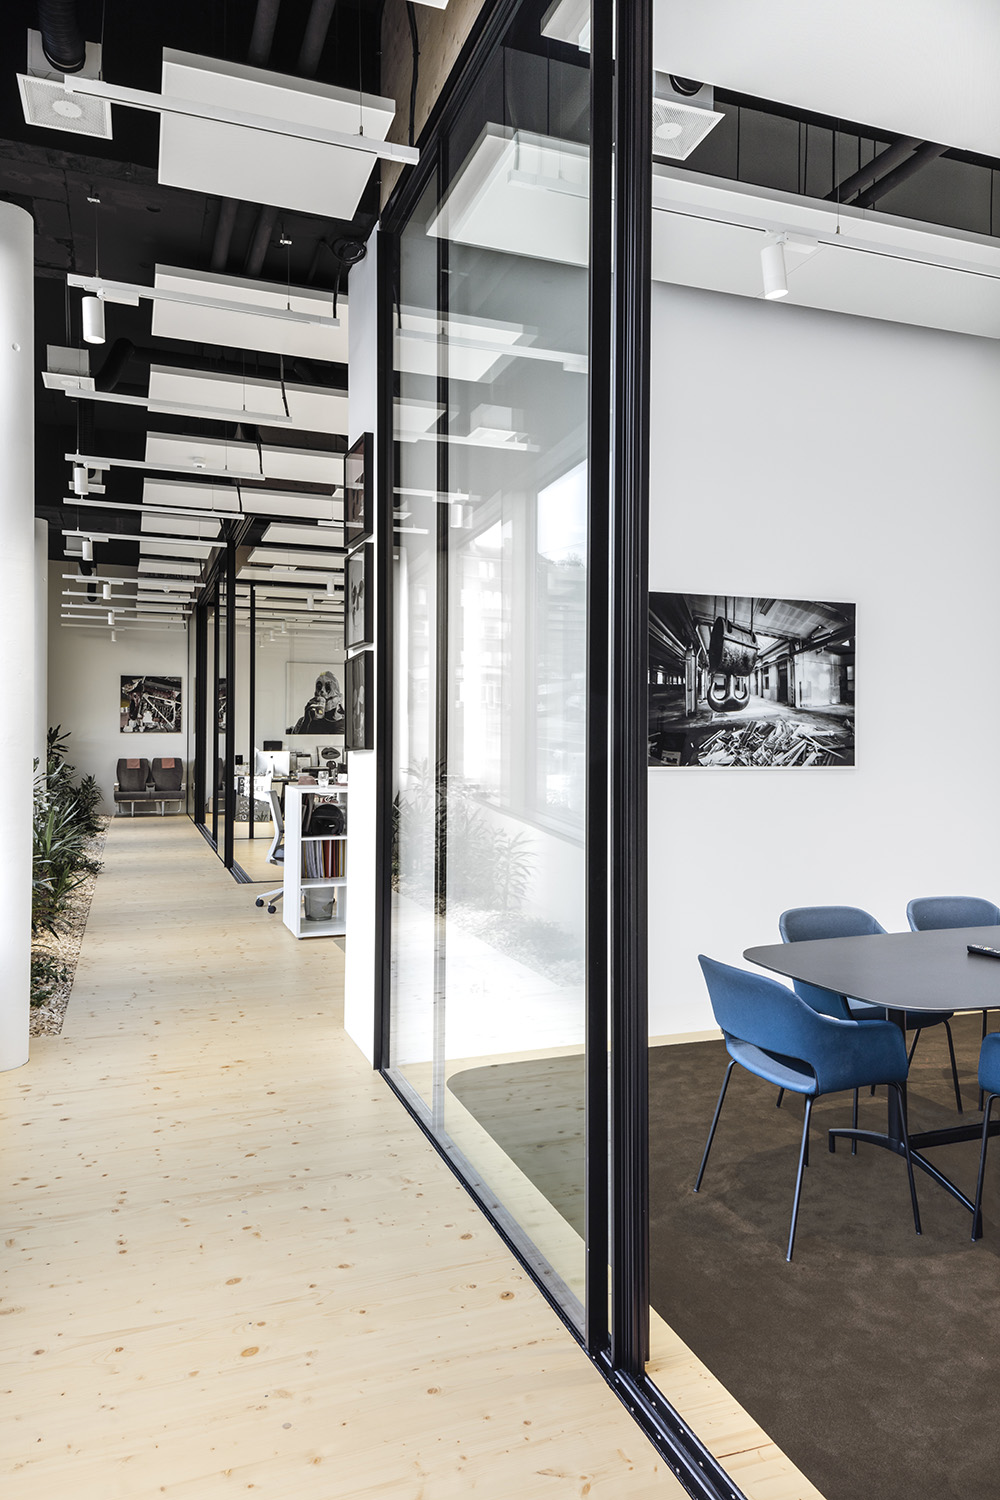 Large full-height glass partitions allow for unobstructed views and allow light to travel. Delphine Burtin